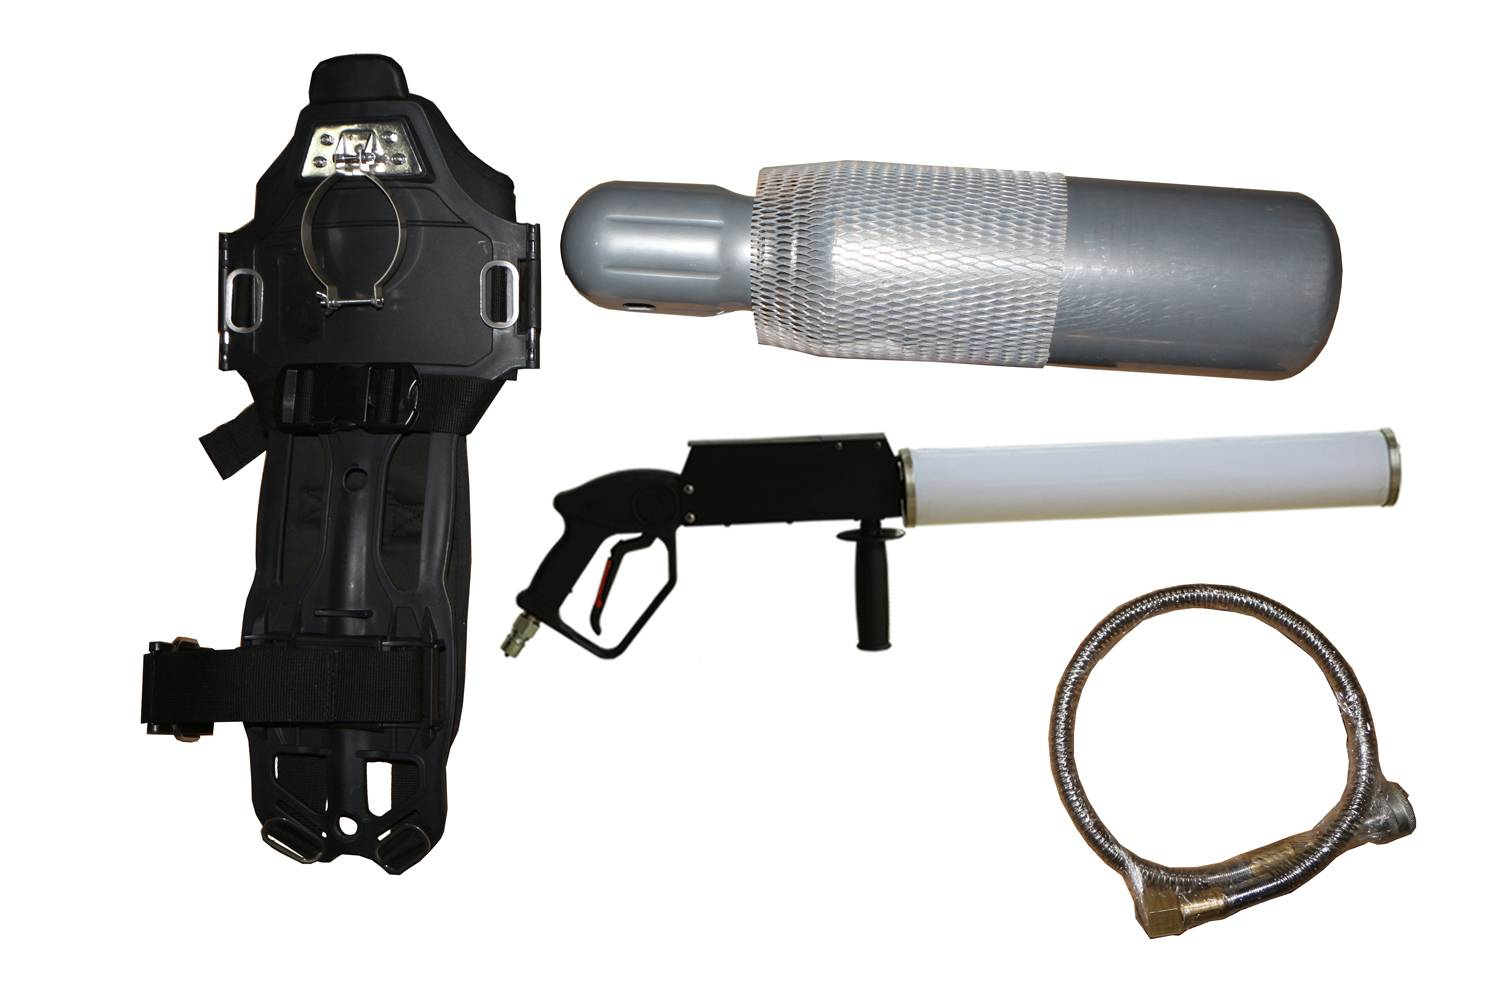 LED co2 gun co2 jets co2 cannon